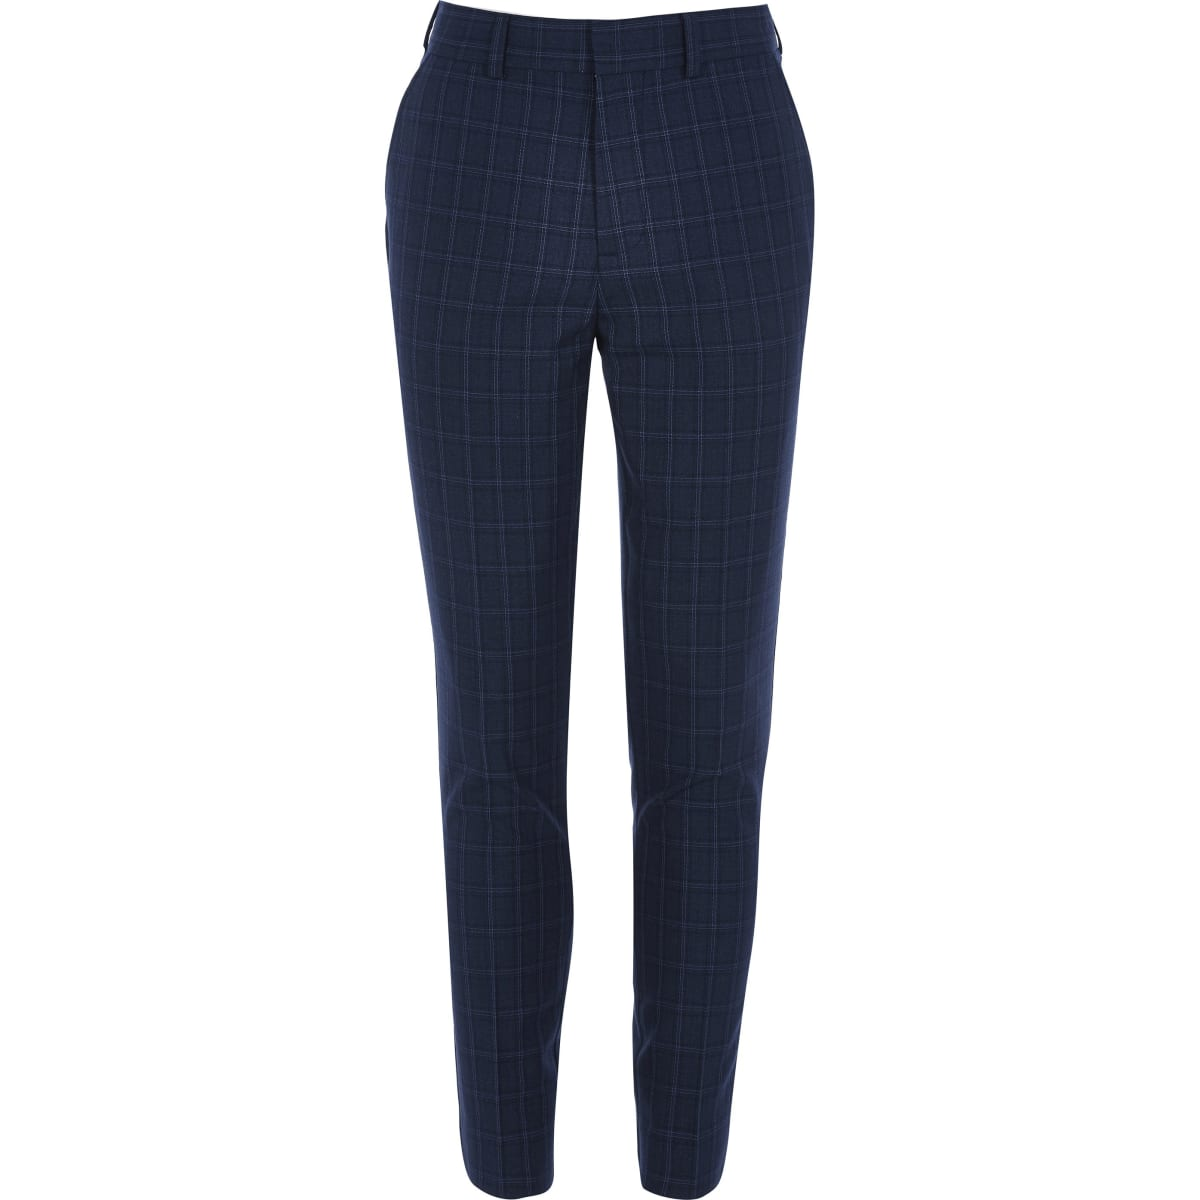 Boys navy check slim fit smart trousers